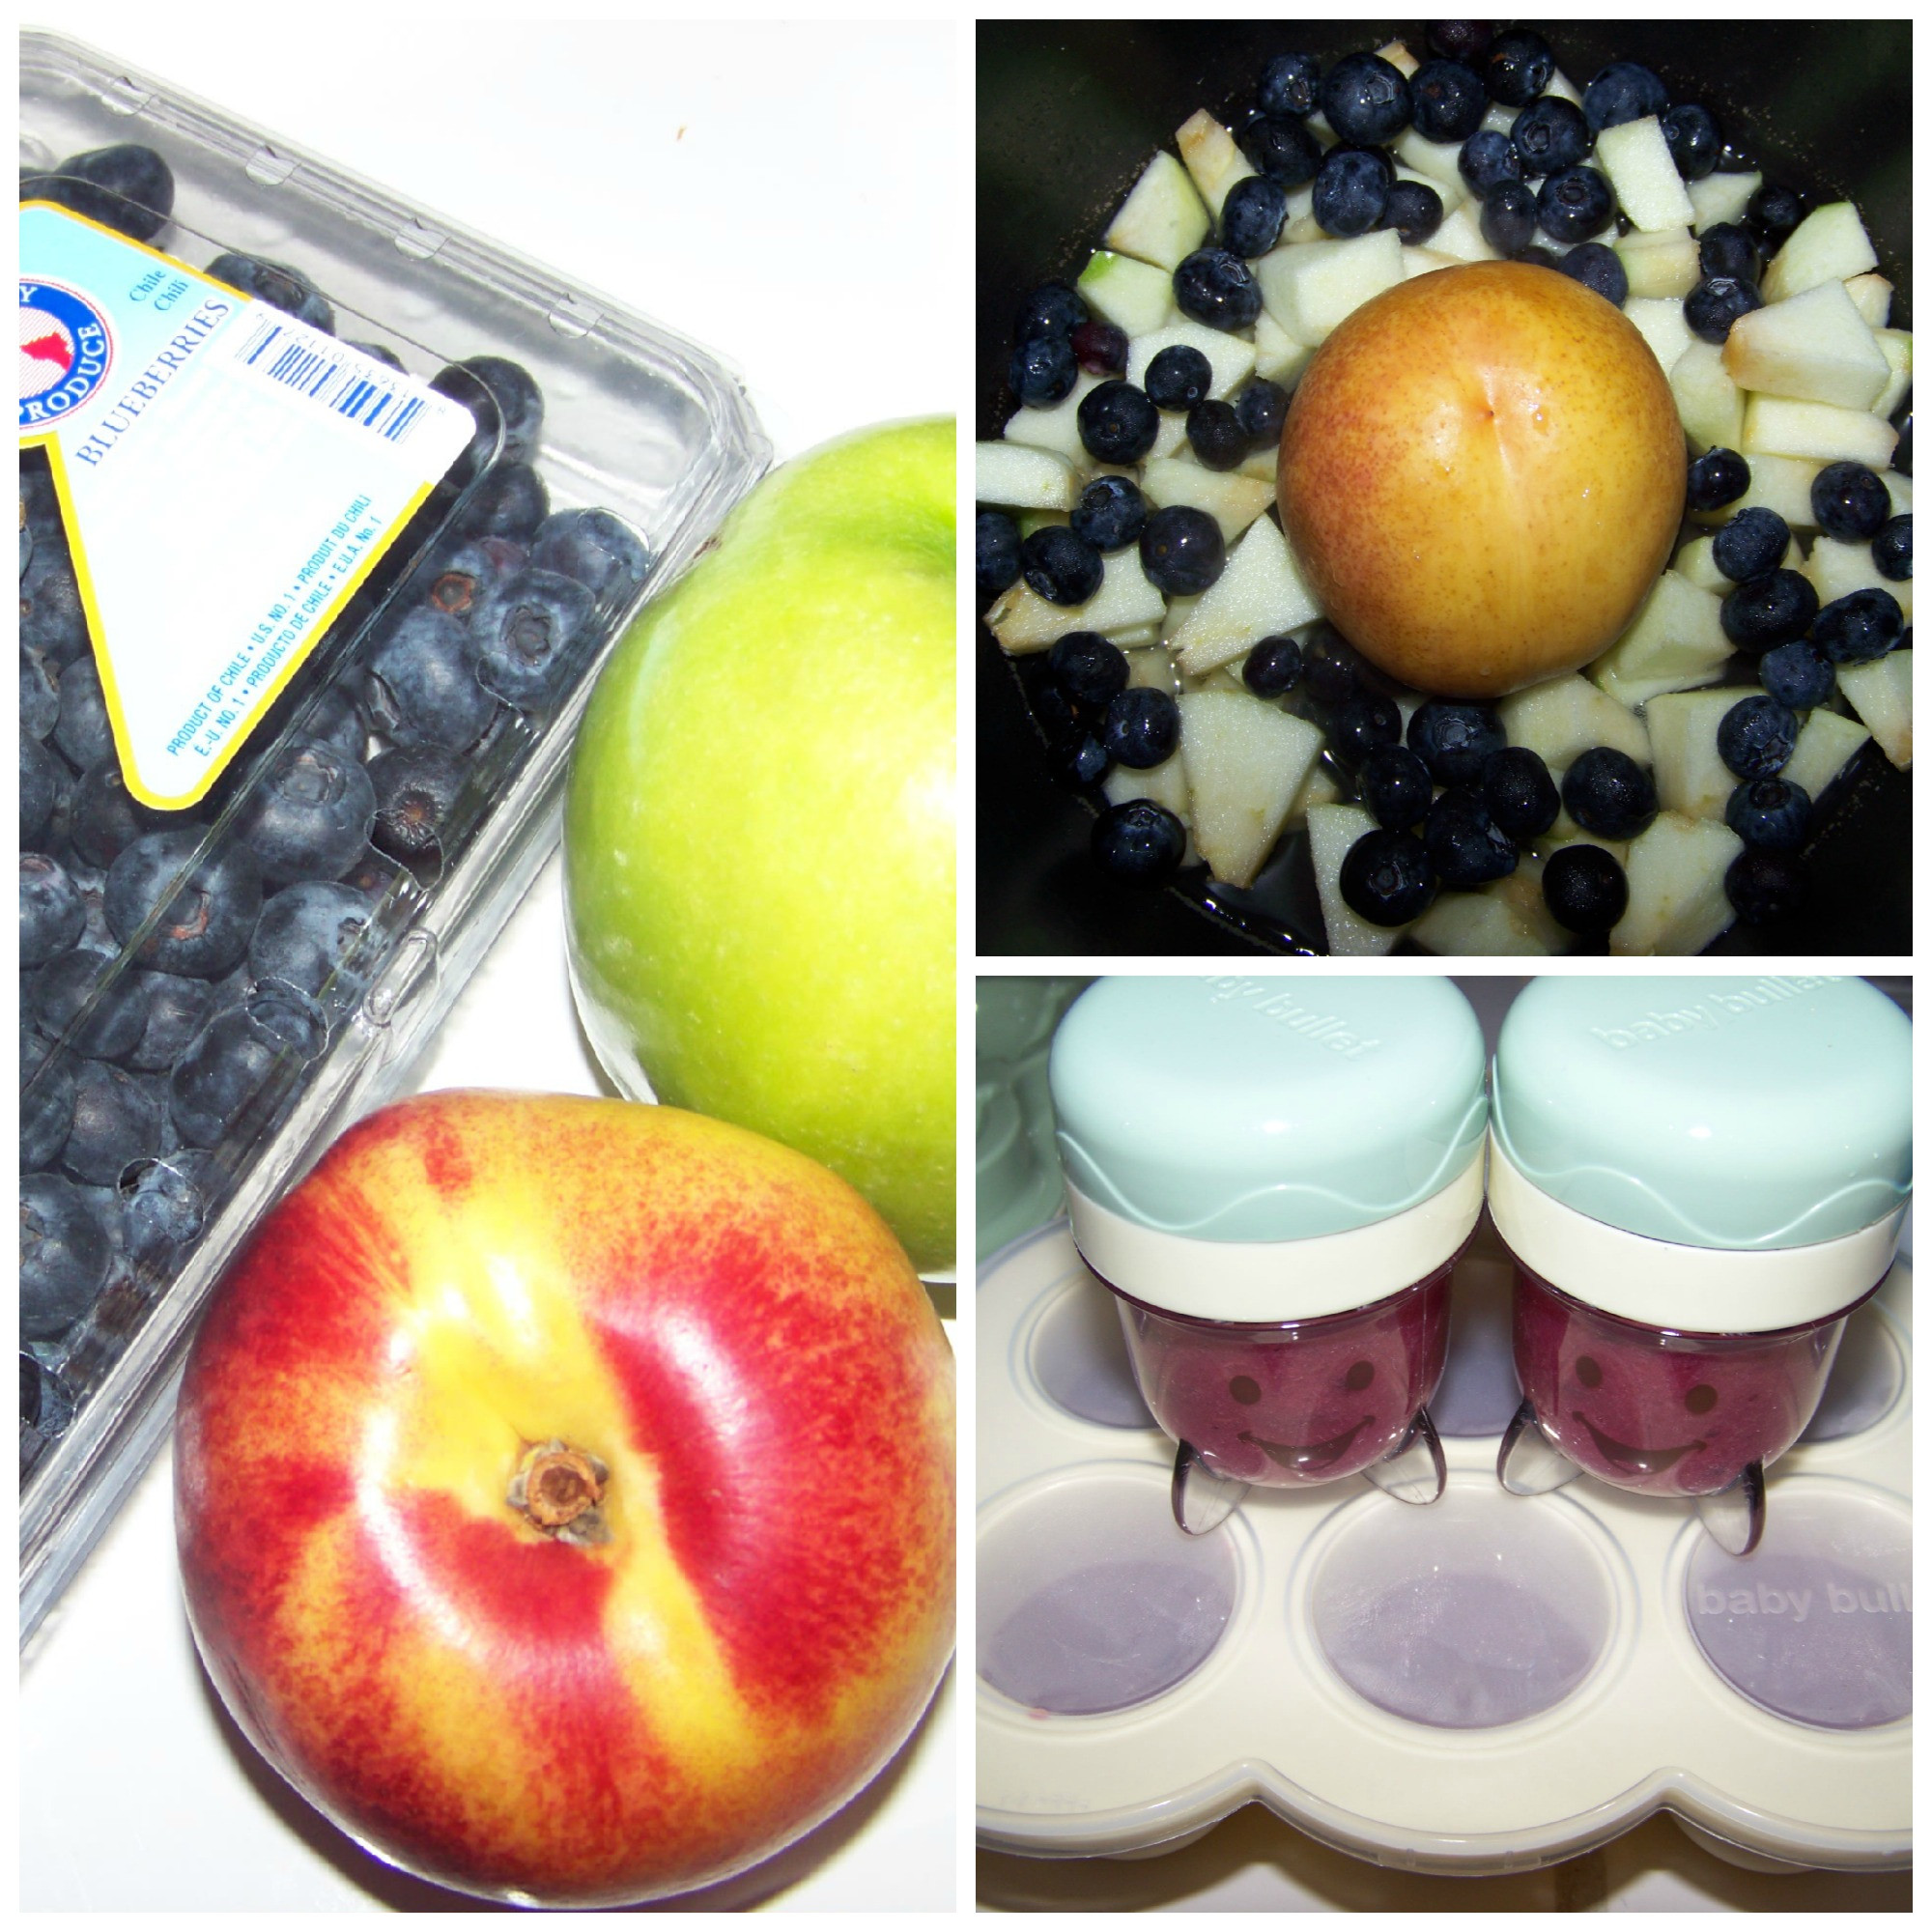 Blueberry Baby Food Recipe  Homemade Baby Food Recipes Blueberries Peaches & Apples